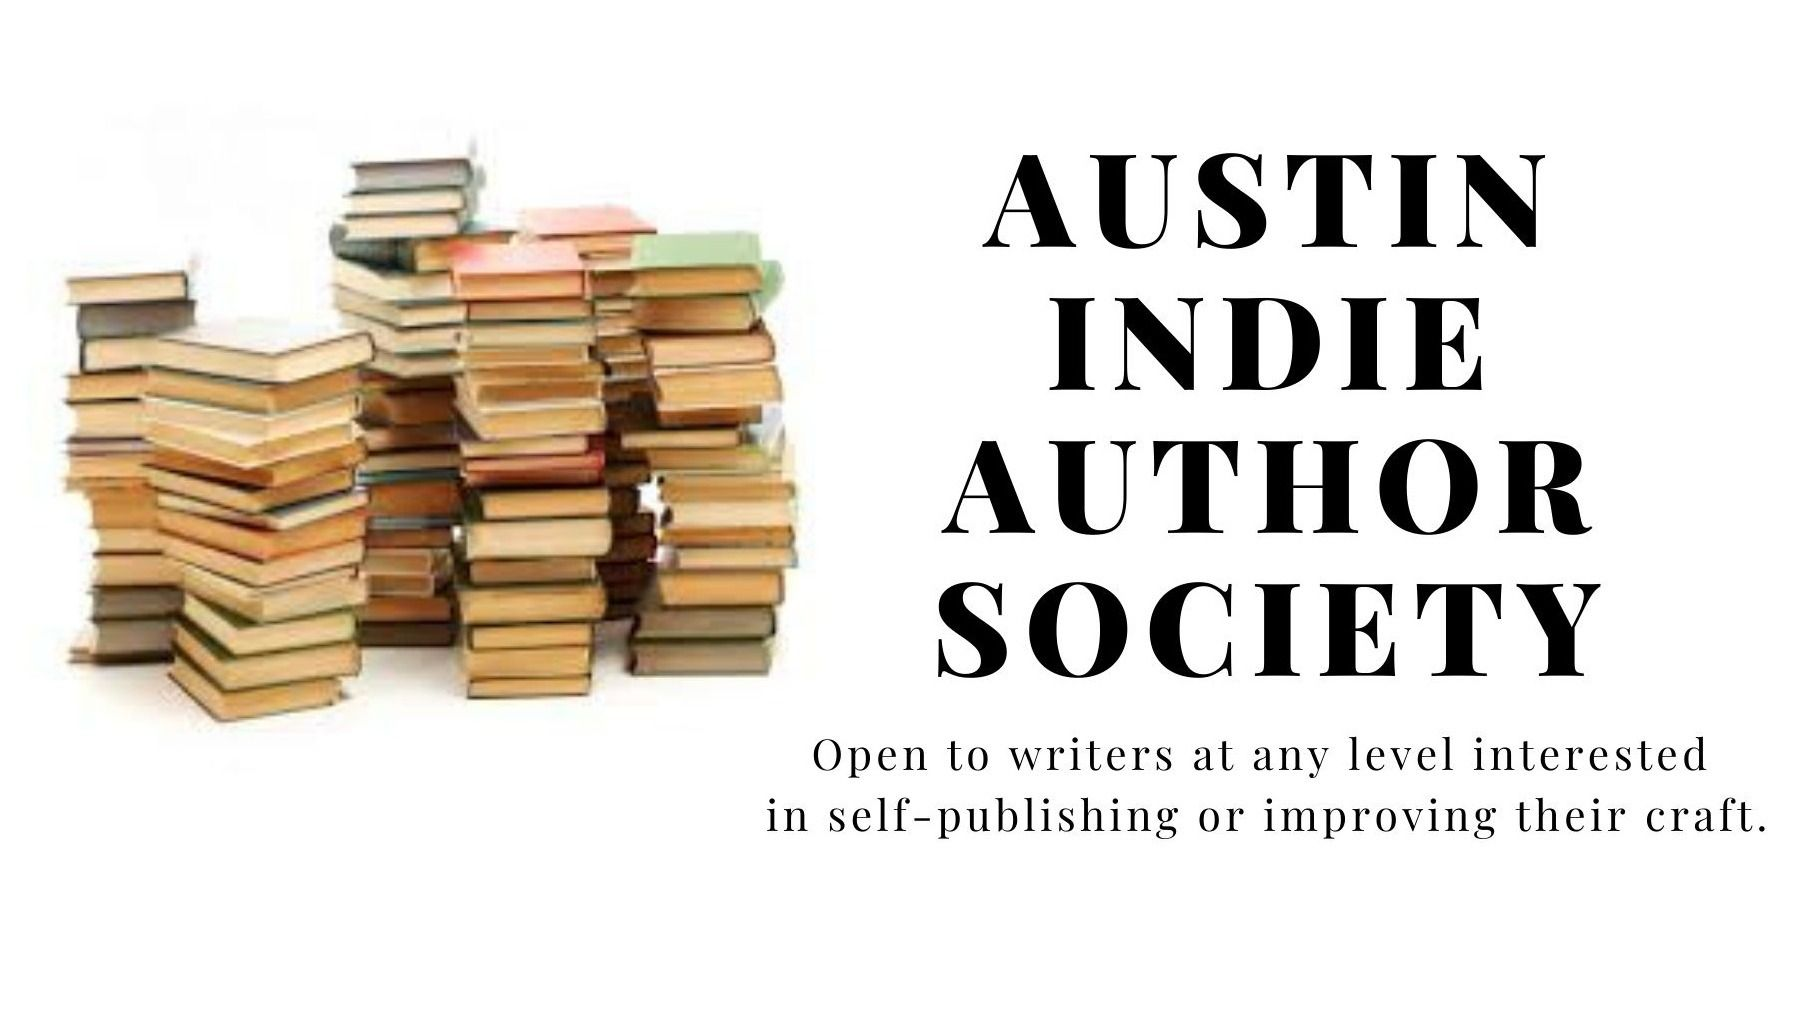 Indie Author Society (Austin and beyond!)